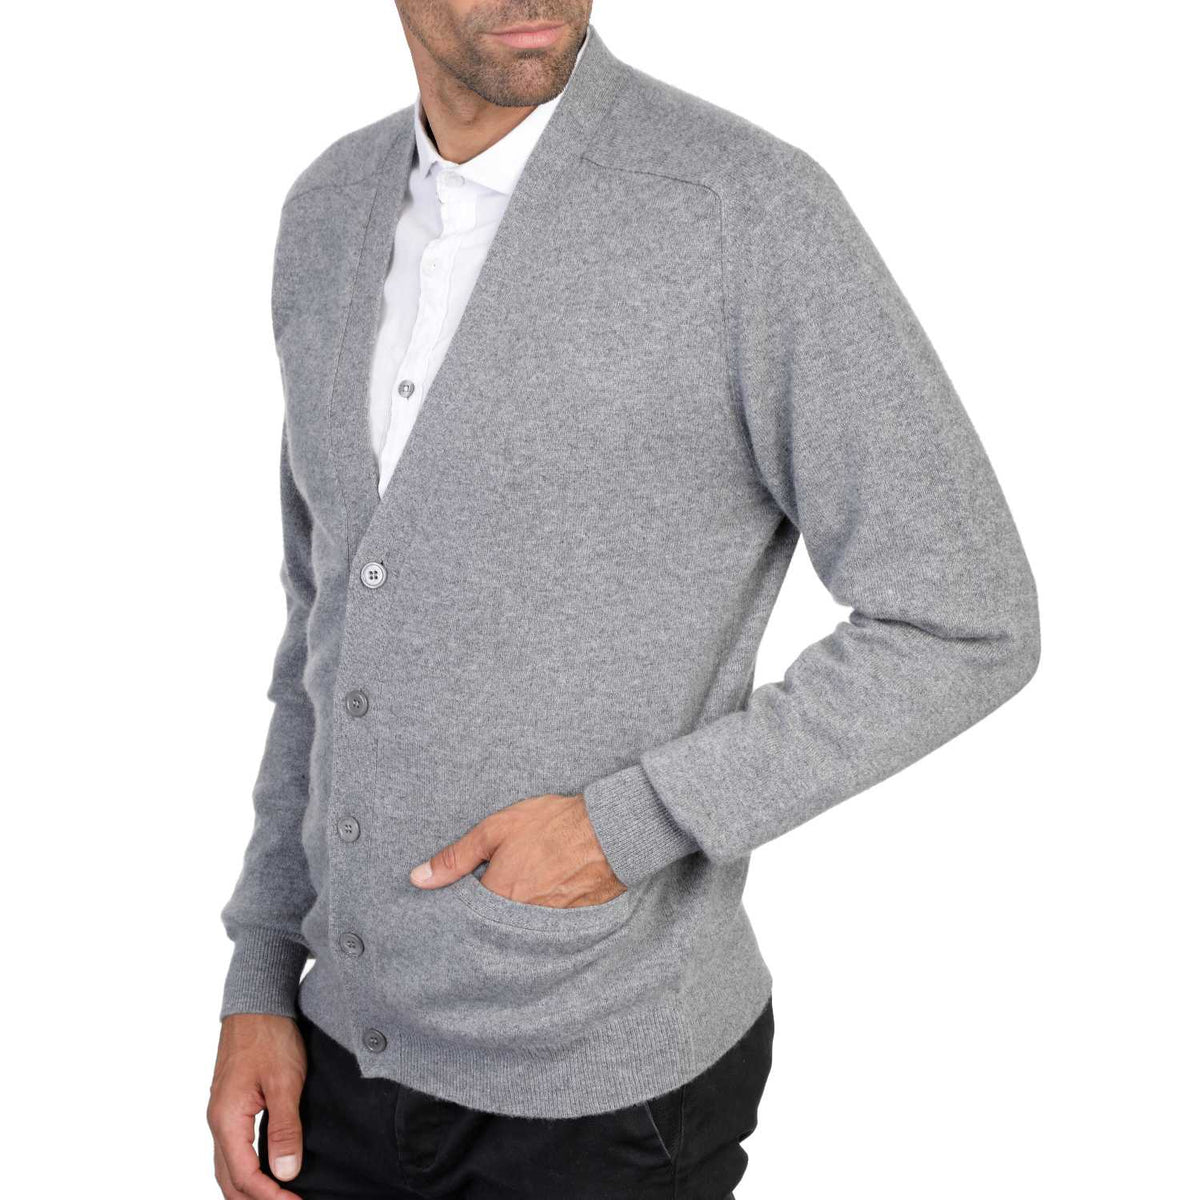 Mens Grey Cashmere Cardigan | Front | Shop at The Cashmere Choice | London